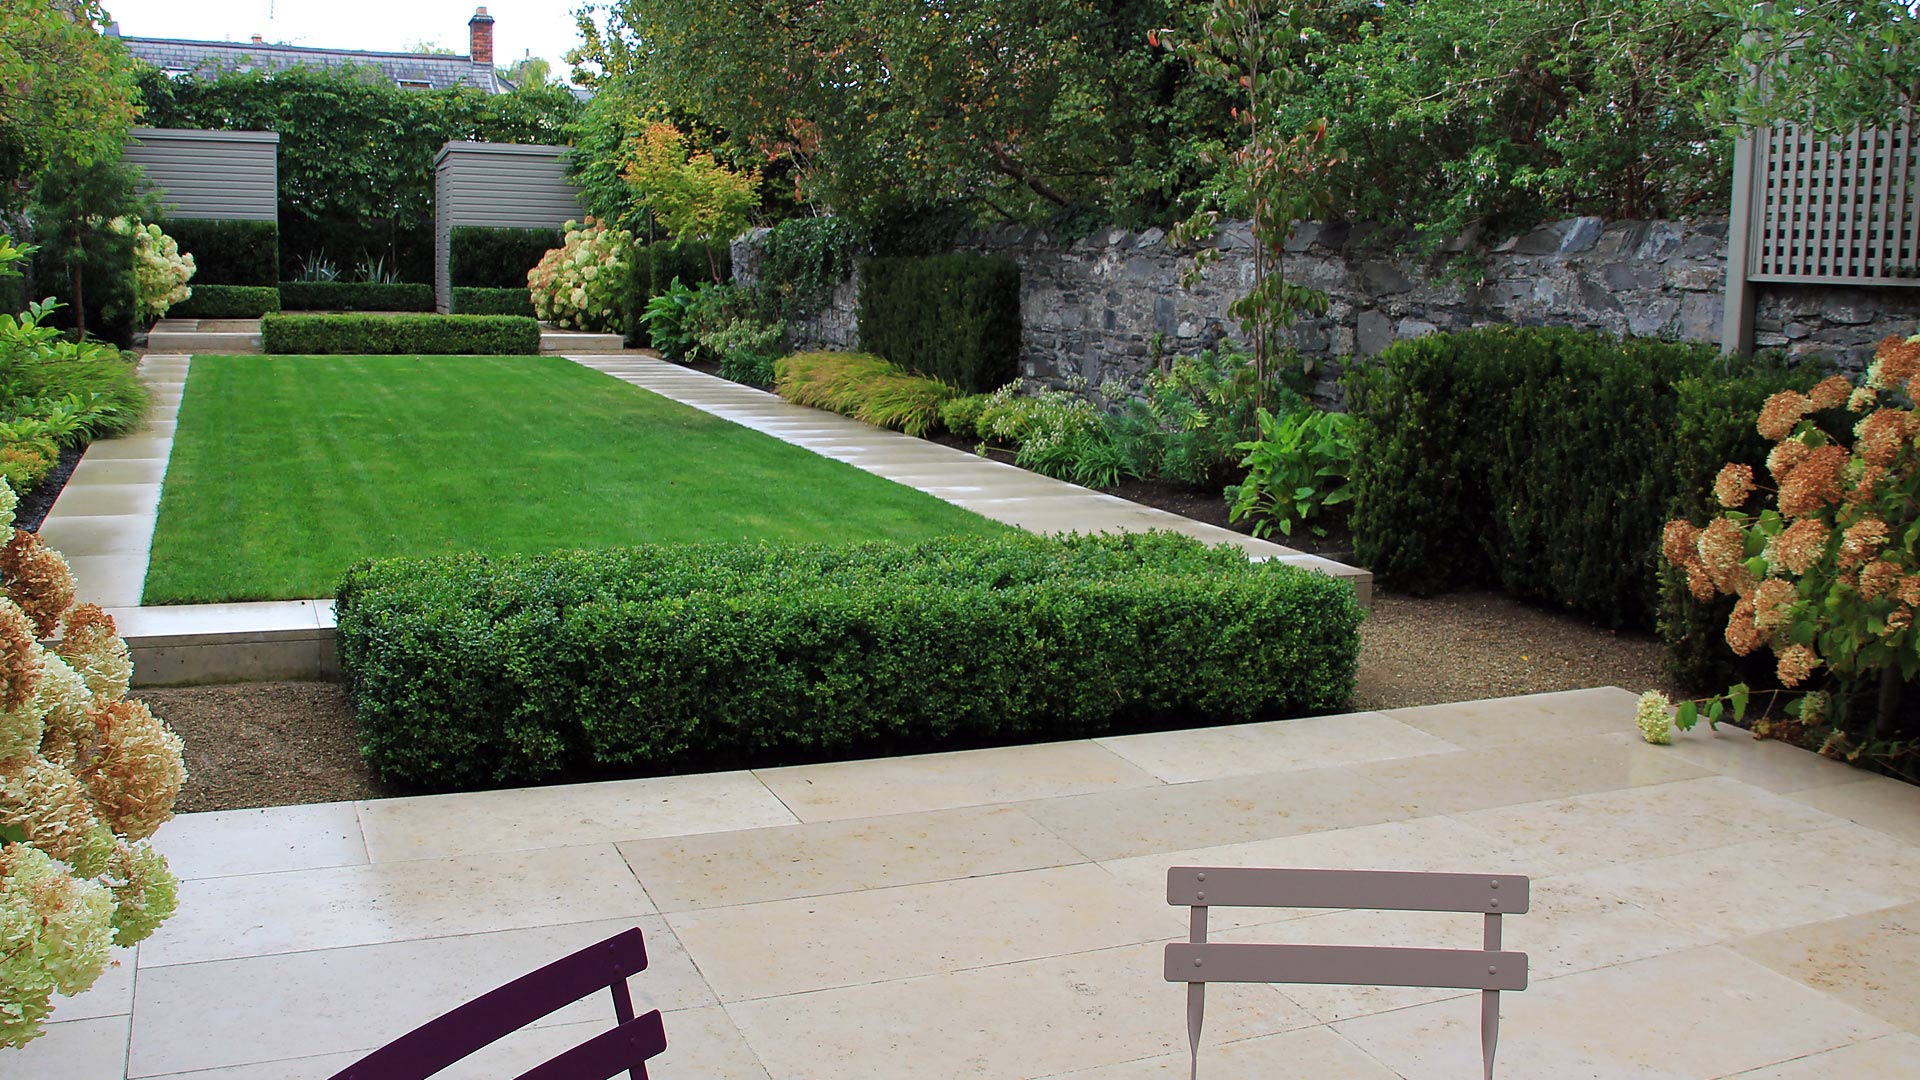 1000 images about trethewey contemporary lawn on for How to design my garden